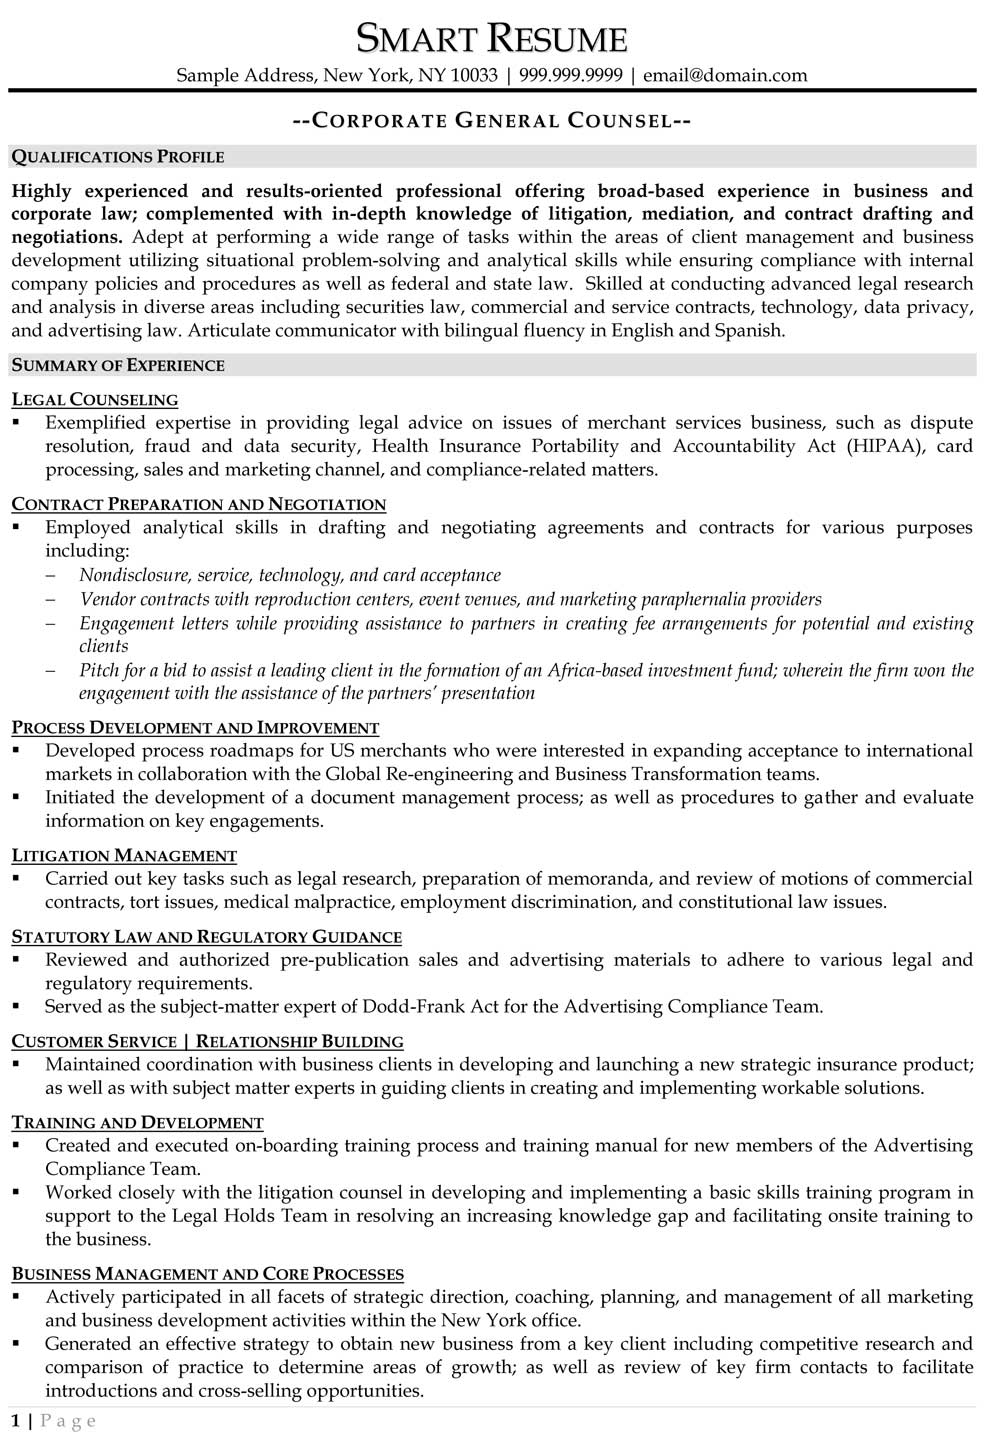 Corporate Communications Manager Resume Sample General Counsel